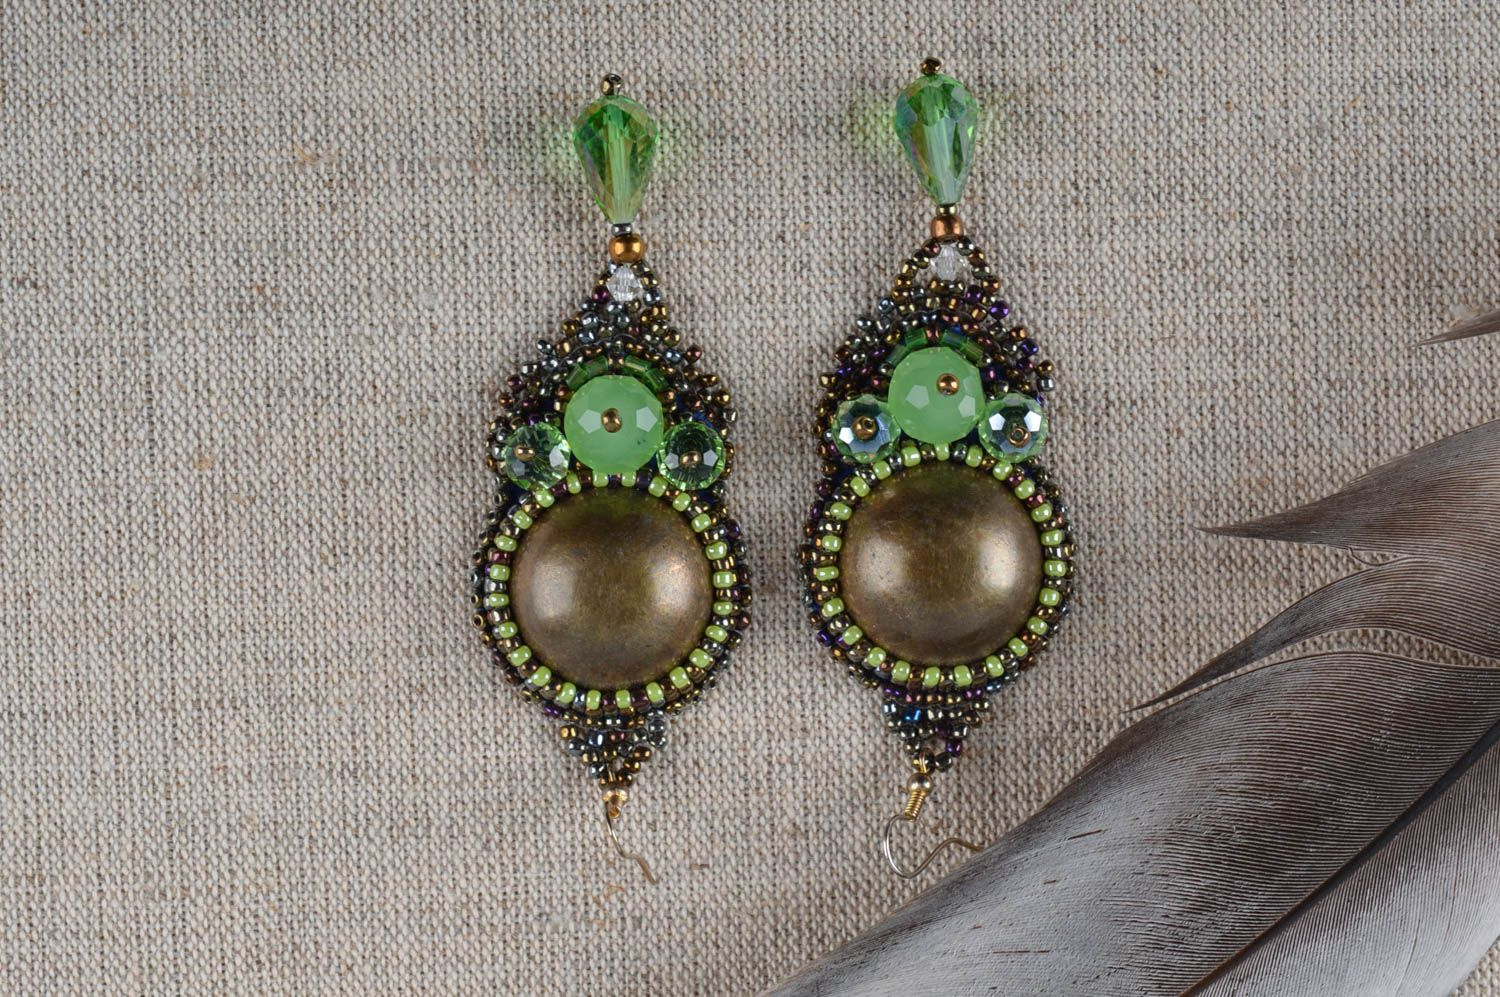 dangle earrings Unusual handmade beaded earrings costume jewelry designs fashion trends - MADEheart.com